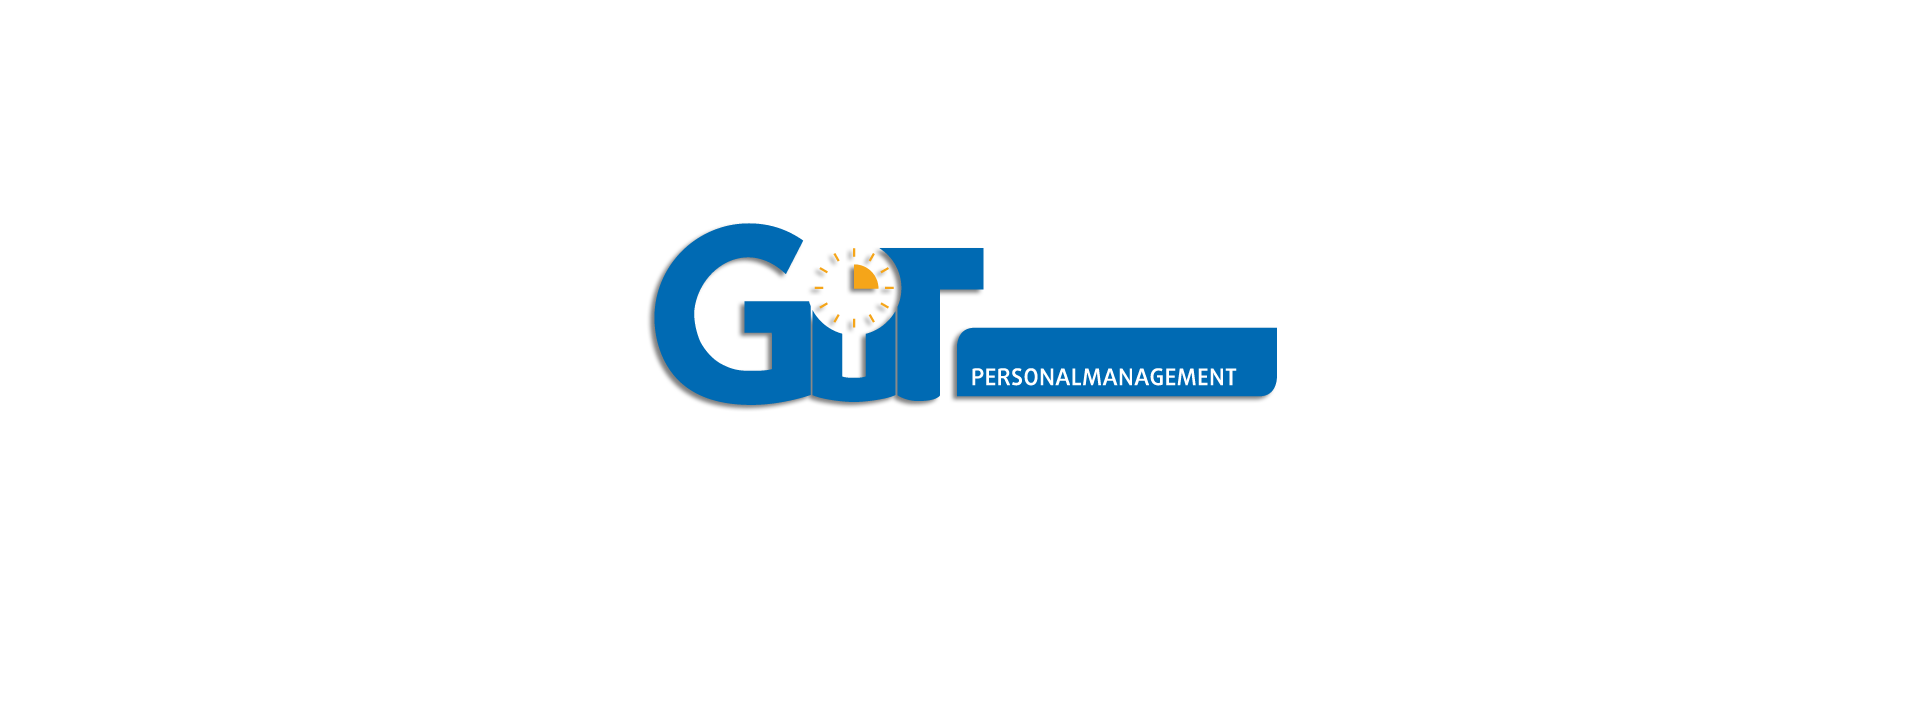 GuT Personalmanagement GmbH